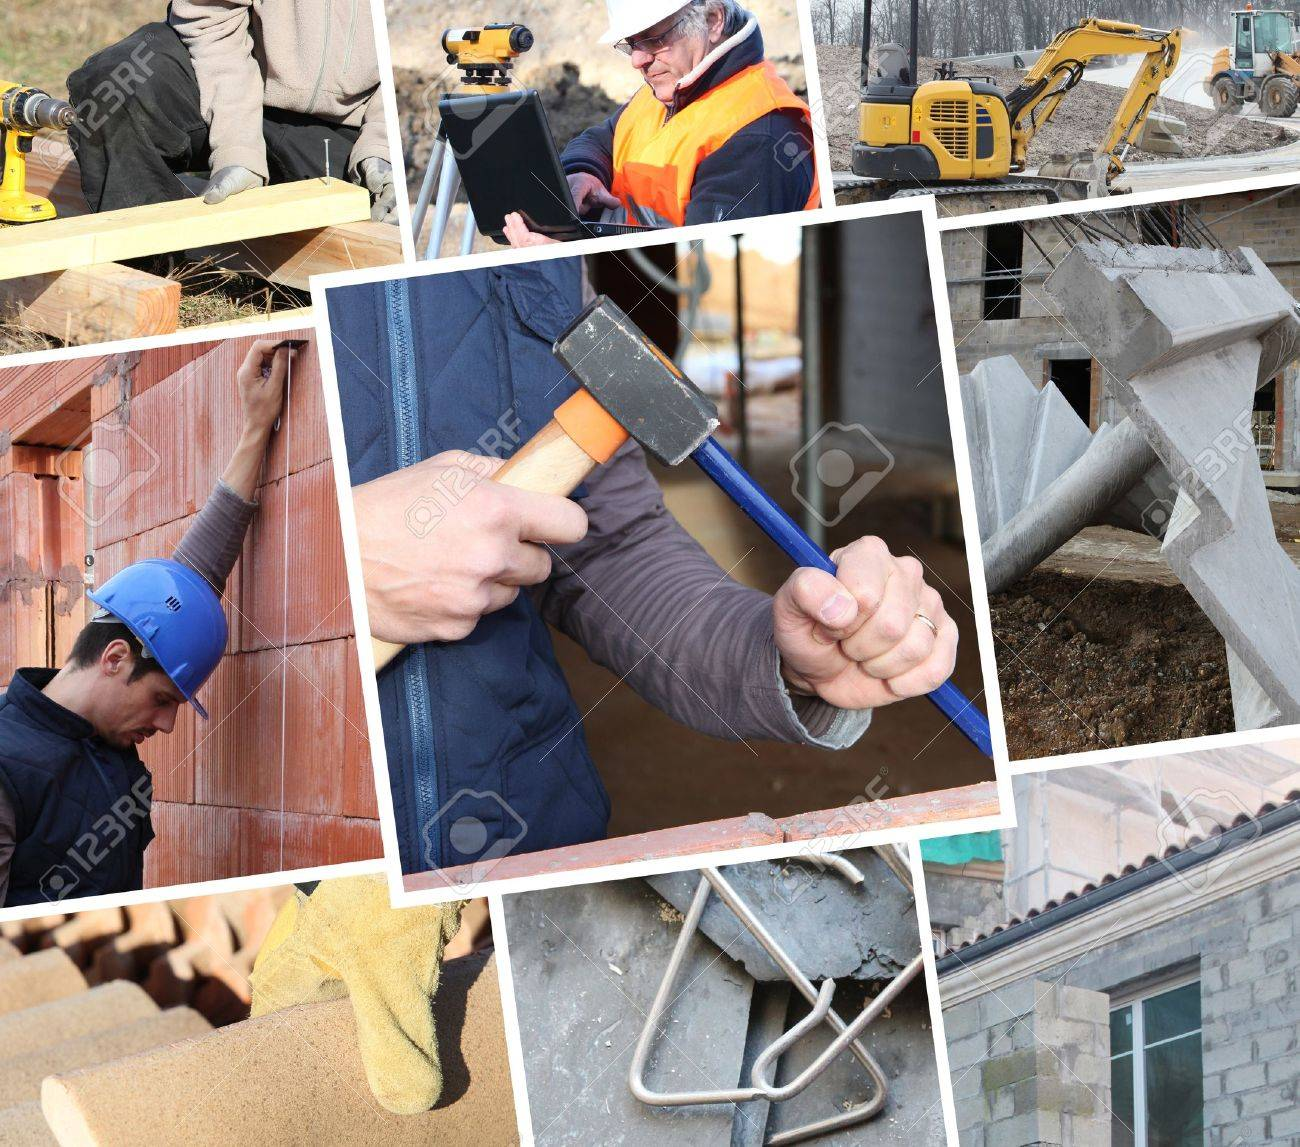 Collage showing construction work Stock Photo - 14023496